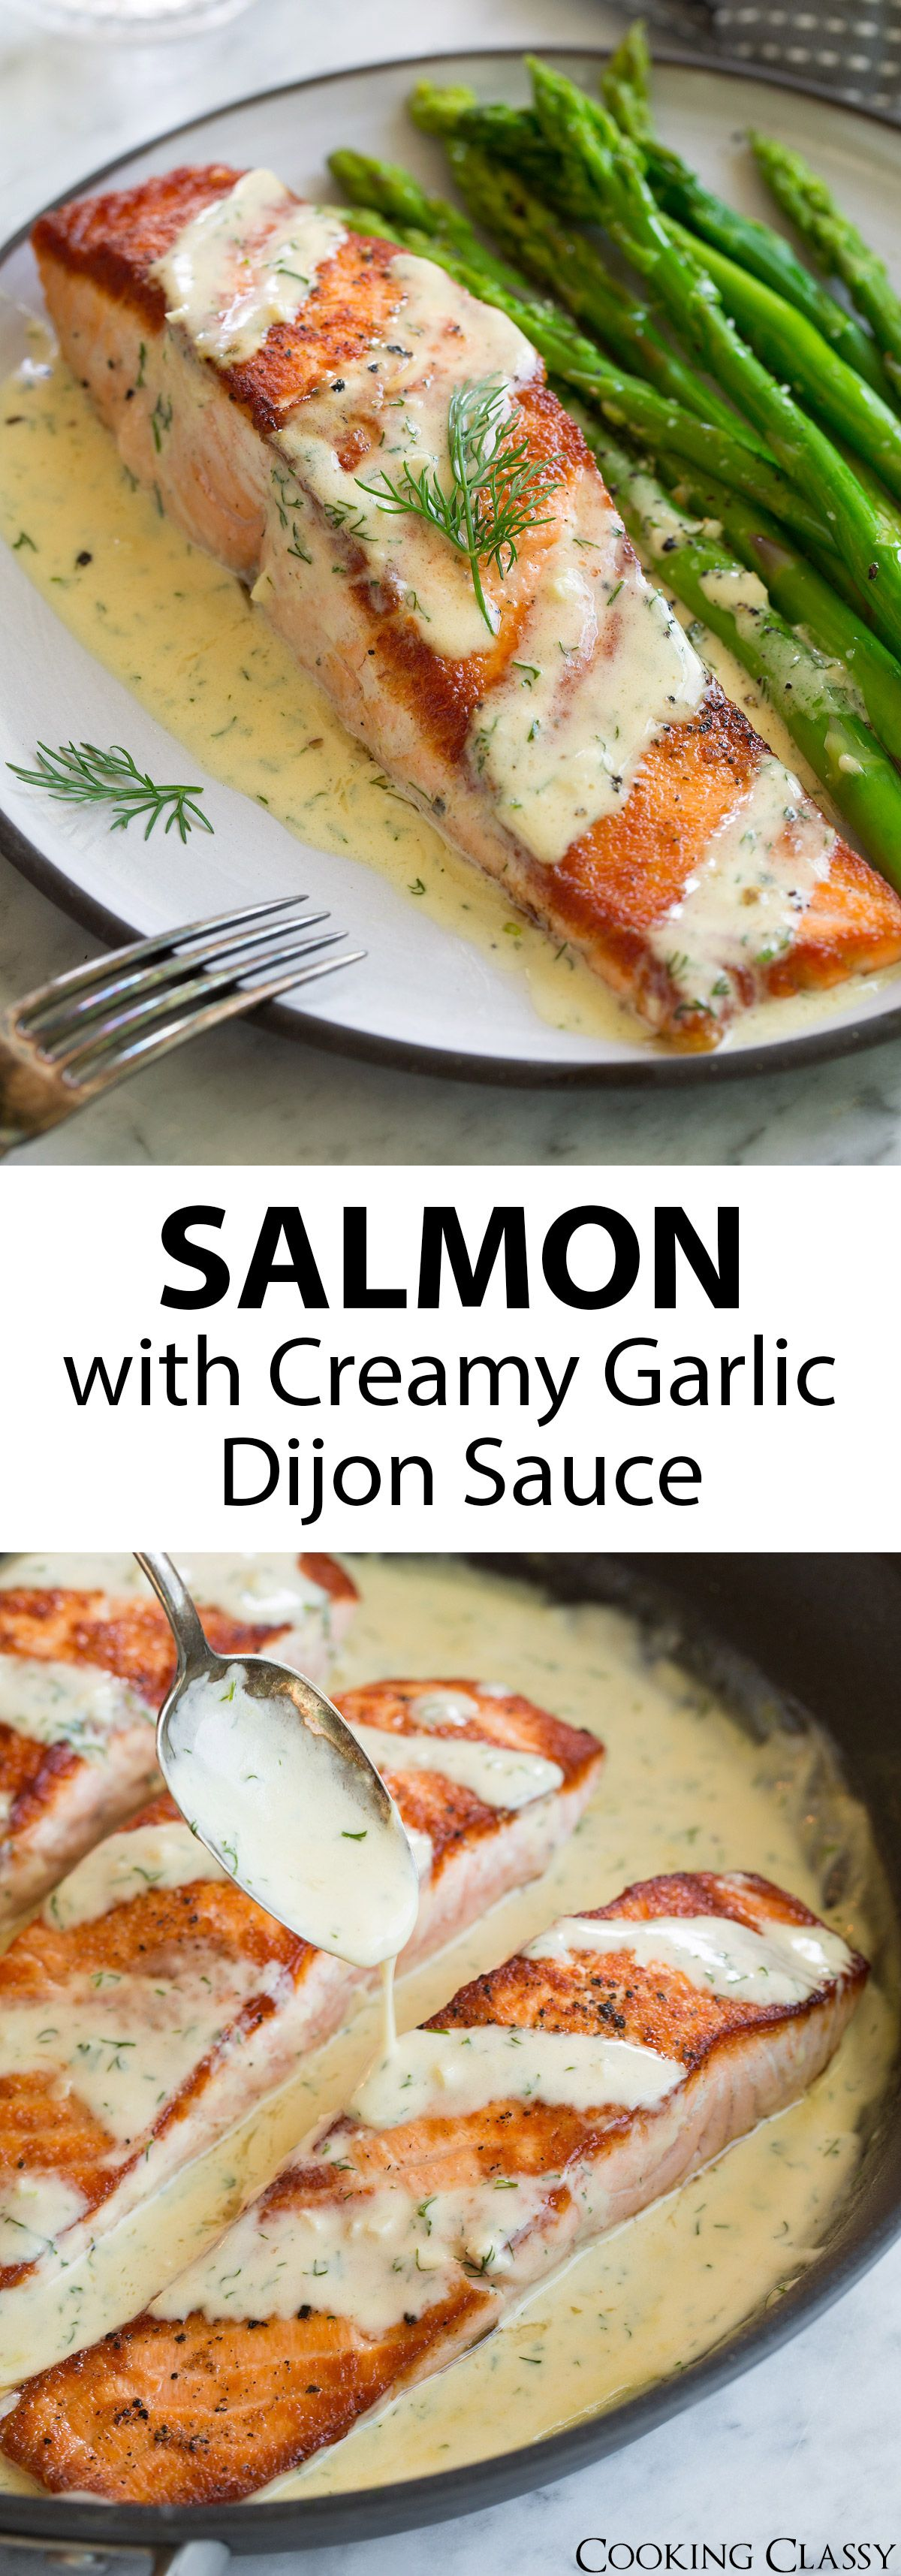 Salmon with Creamy Garlic Dijon Sauce - This is such a flavorful, elegant salmon recipe that anyone can pull of. It's comes together so quickly yet it's sure to impress anyone. Pan seared salmon is perfectly delicious on it's own but when you add a bright sauce like this it takes it to a whole new level! #salmon #recipe #pansearedsalmon #easydinner  via @cookingclassy #salmonrecipes